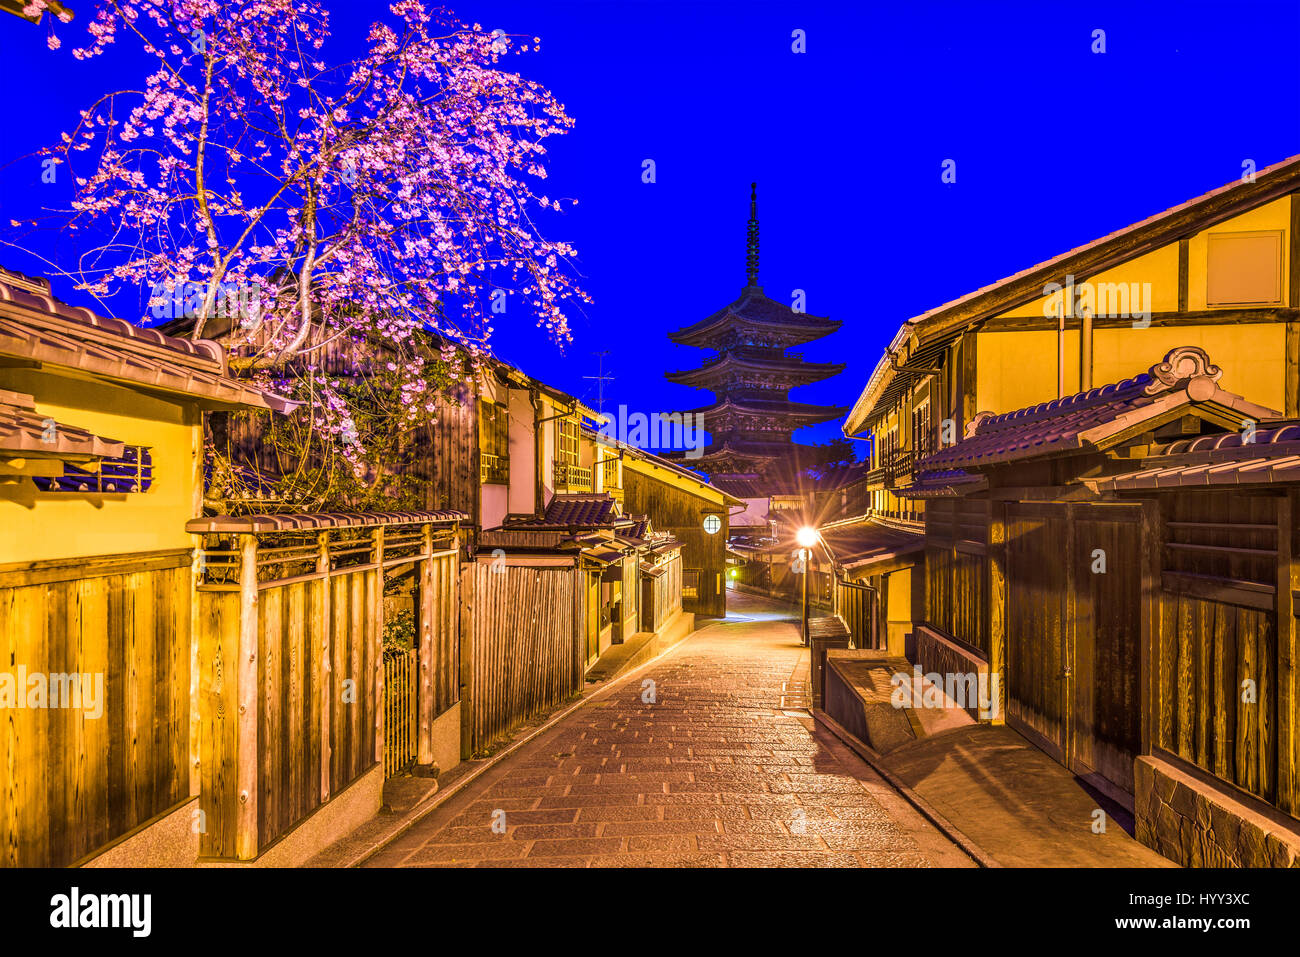 Kyoto, Japon dans le quartier Higashiyama au printemps. Photo Stock